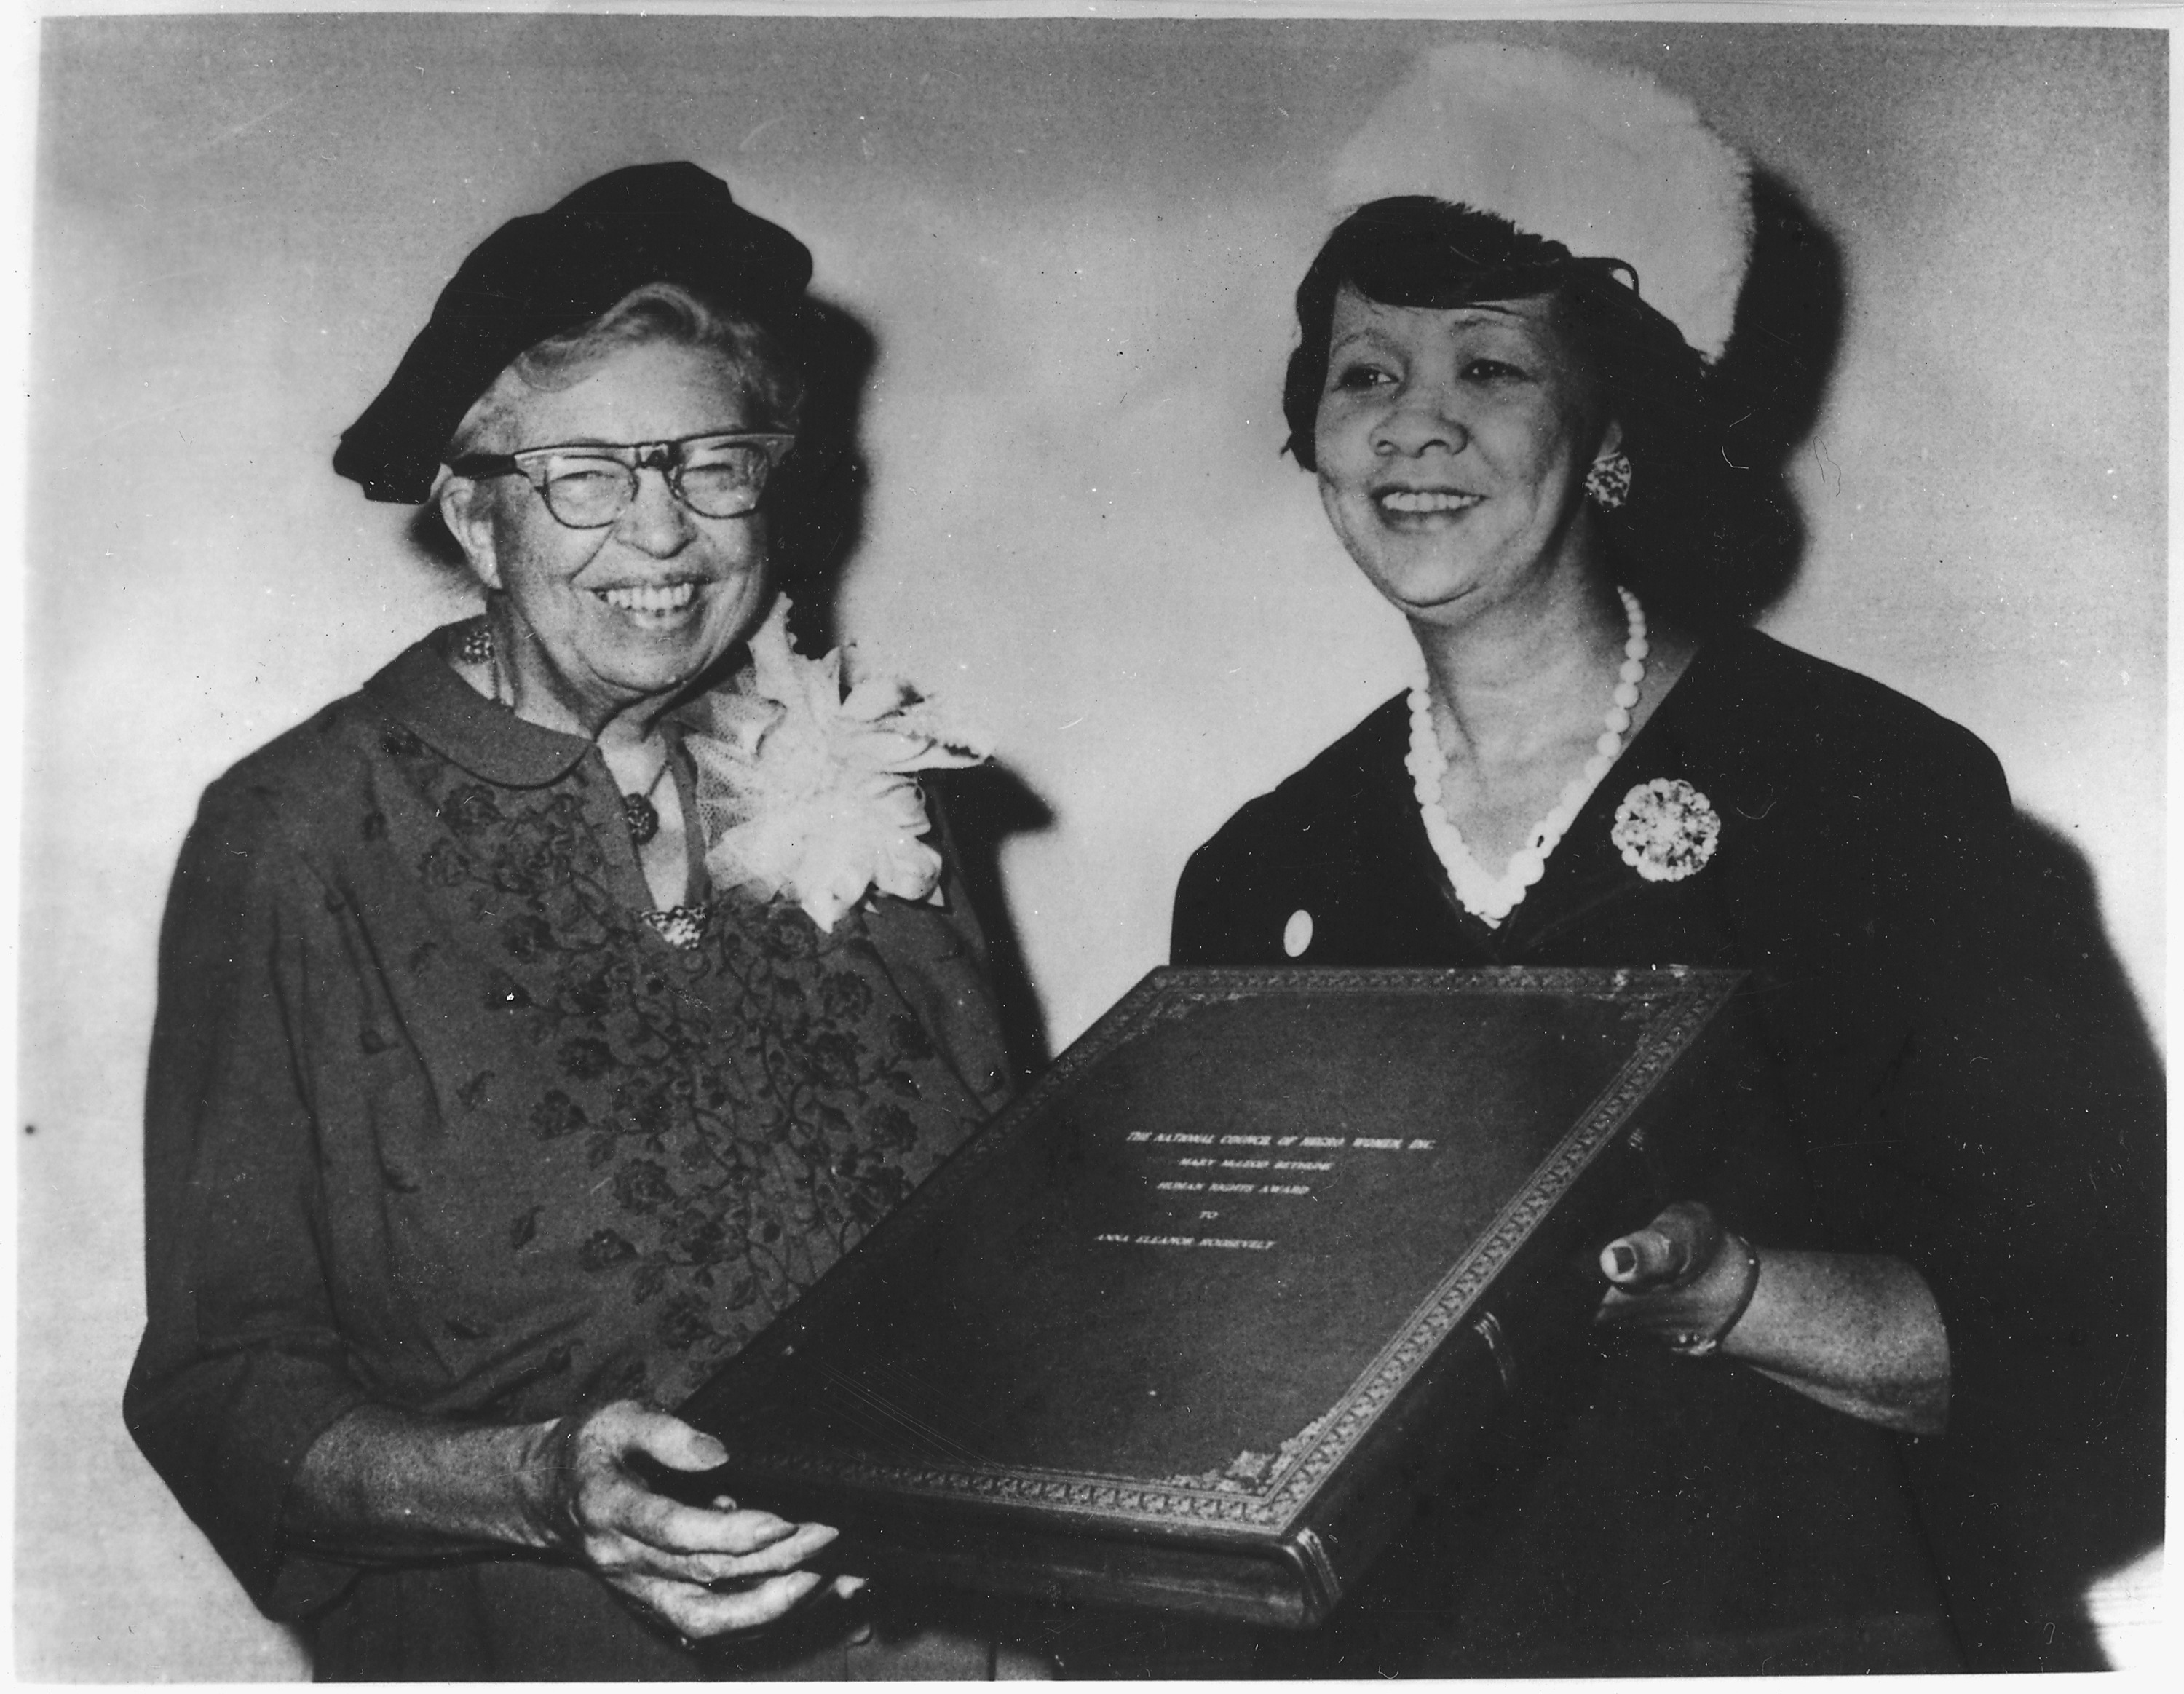 a letter to an editor about an article on eleanor roosevelt Anna eleanor roosevelt, granddaughter of former first lady eleanor roosevelt, will headline a women's equity day celebration rally, sponsored by ywca metro louis the rally will commemorate the .